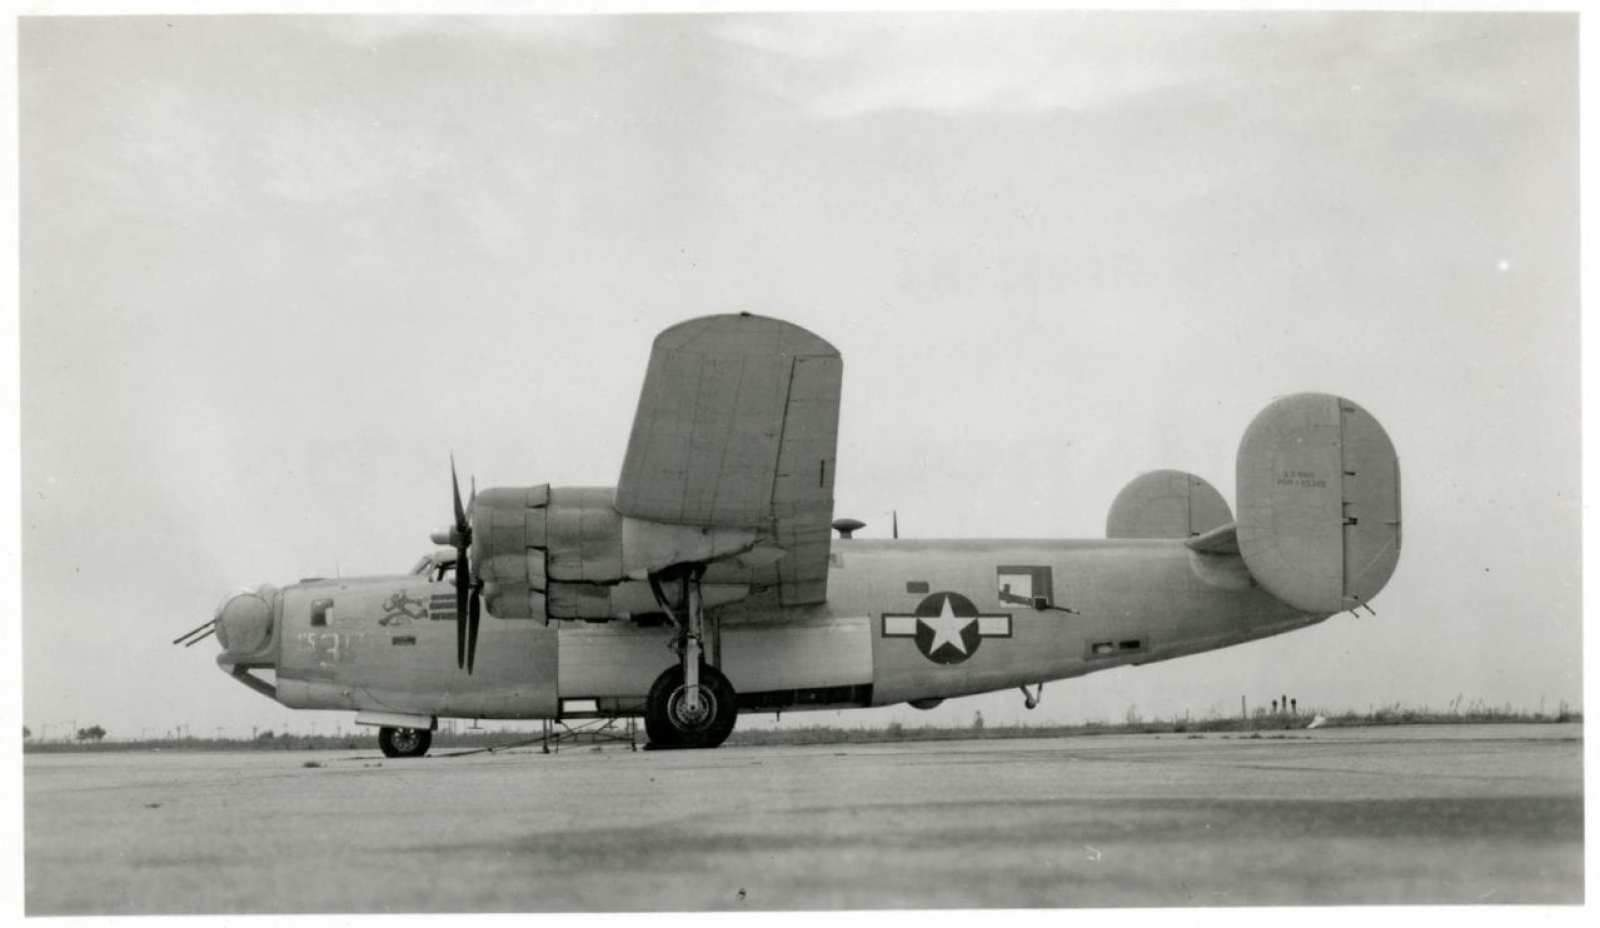 Left side view of Consolidated PB4Y-1 Liberator/Privateer (S/N 65385) on the ground.